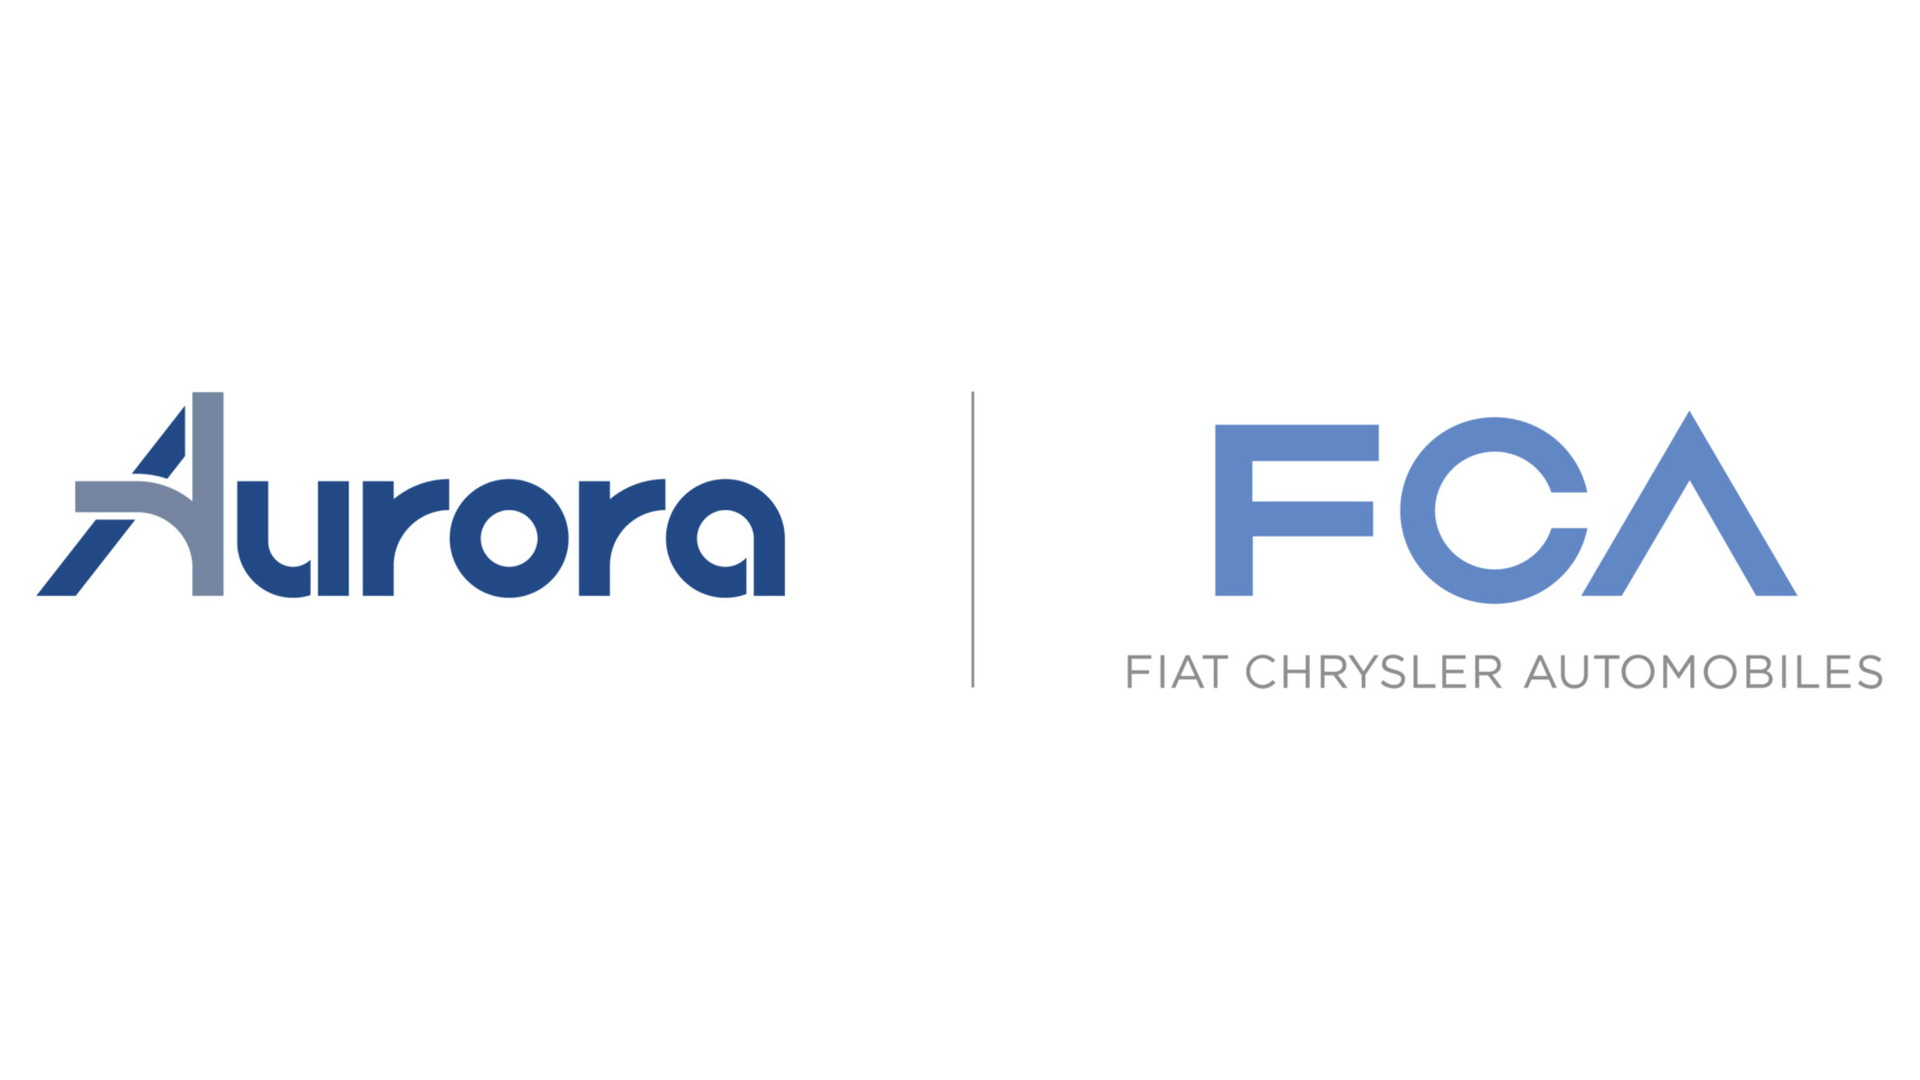 Aurora logo and Fiat Chrysler Automobiles logo